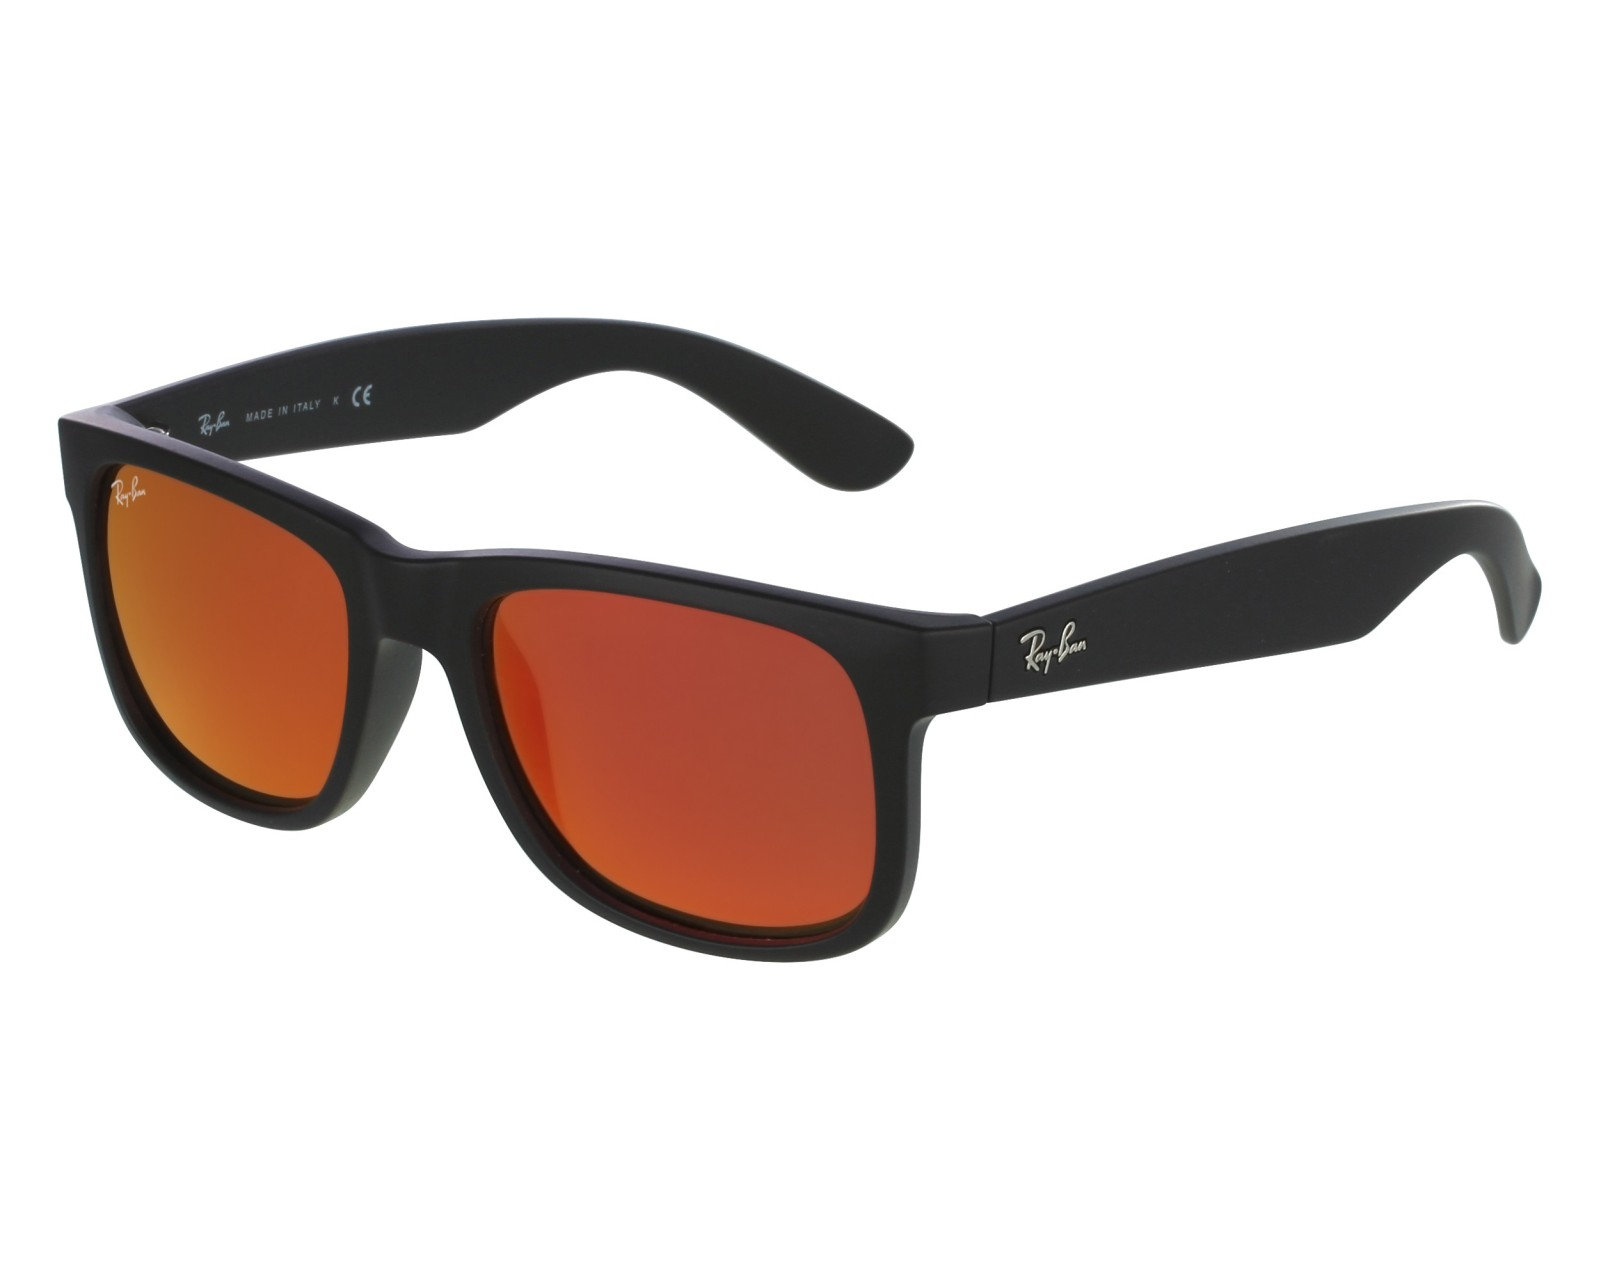 Ray Ban Sunglasses Rb 4165 622 6q Buy Now And Save 9